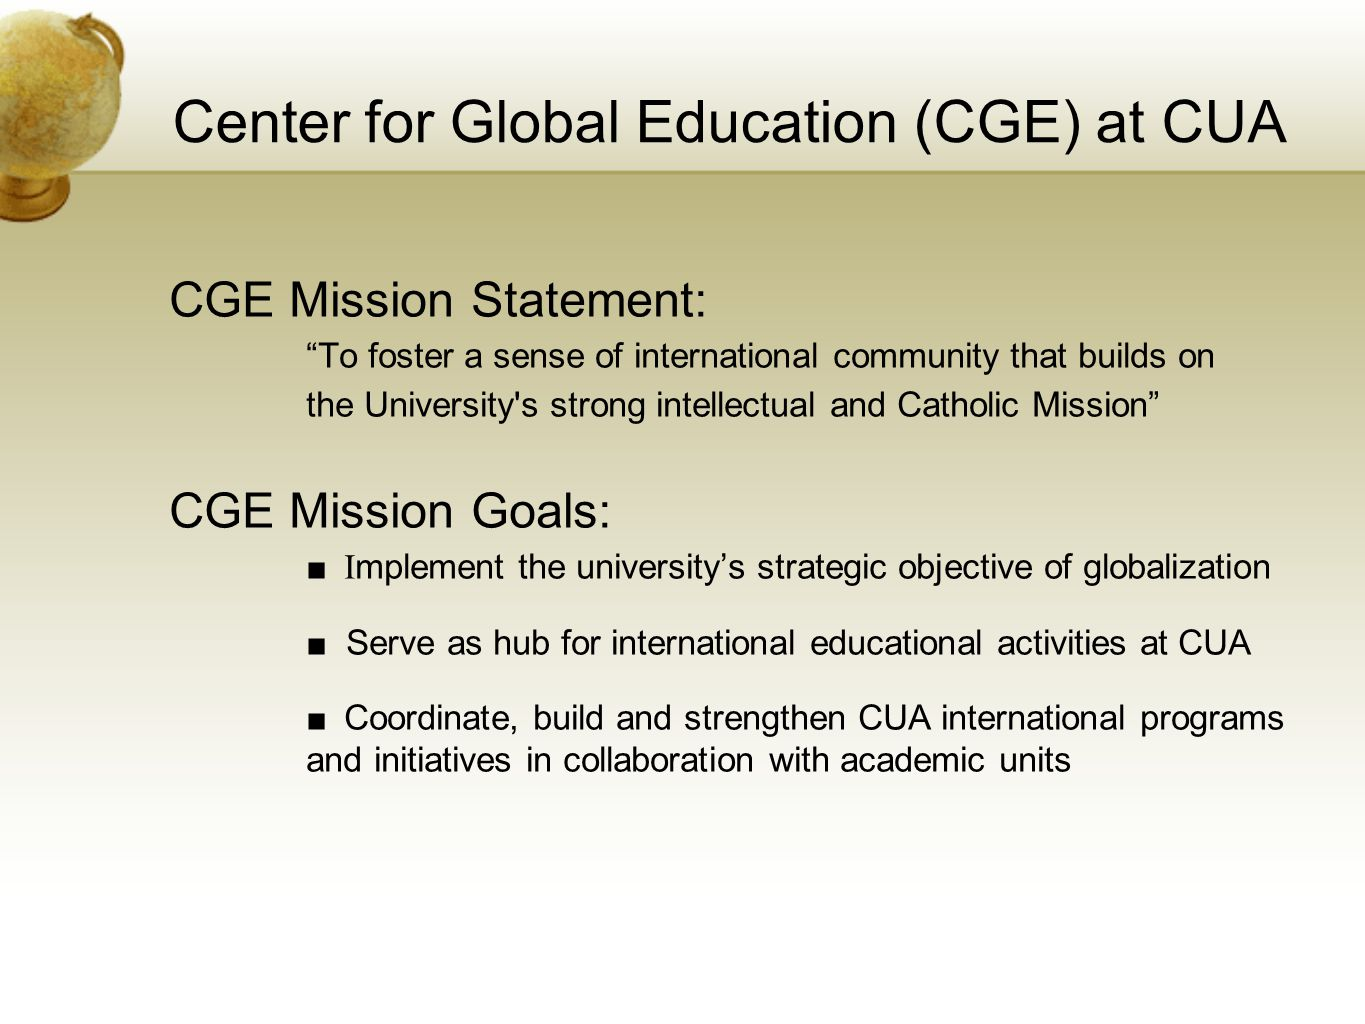 Center for Global Education (CGE) at CUA CGE Mission Statement: To foster a sense of international community that builds on the University s strong intellectual and Catholic Mission CGE Mission Goals: I mplement the universitys strategic objective of globalization Serve as hub for international educational activities at CUA Coordinate, build and strengthen CUA international programs and initiatives in collaboration with academic units